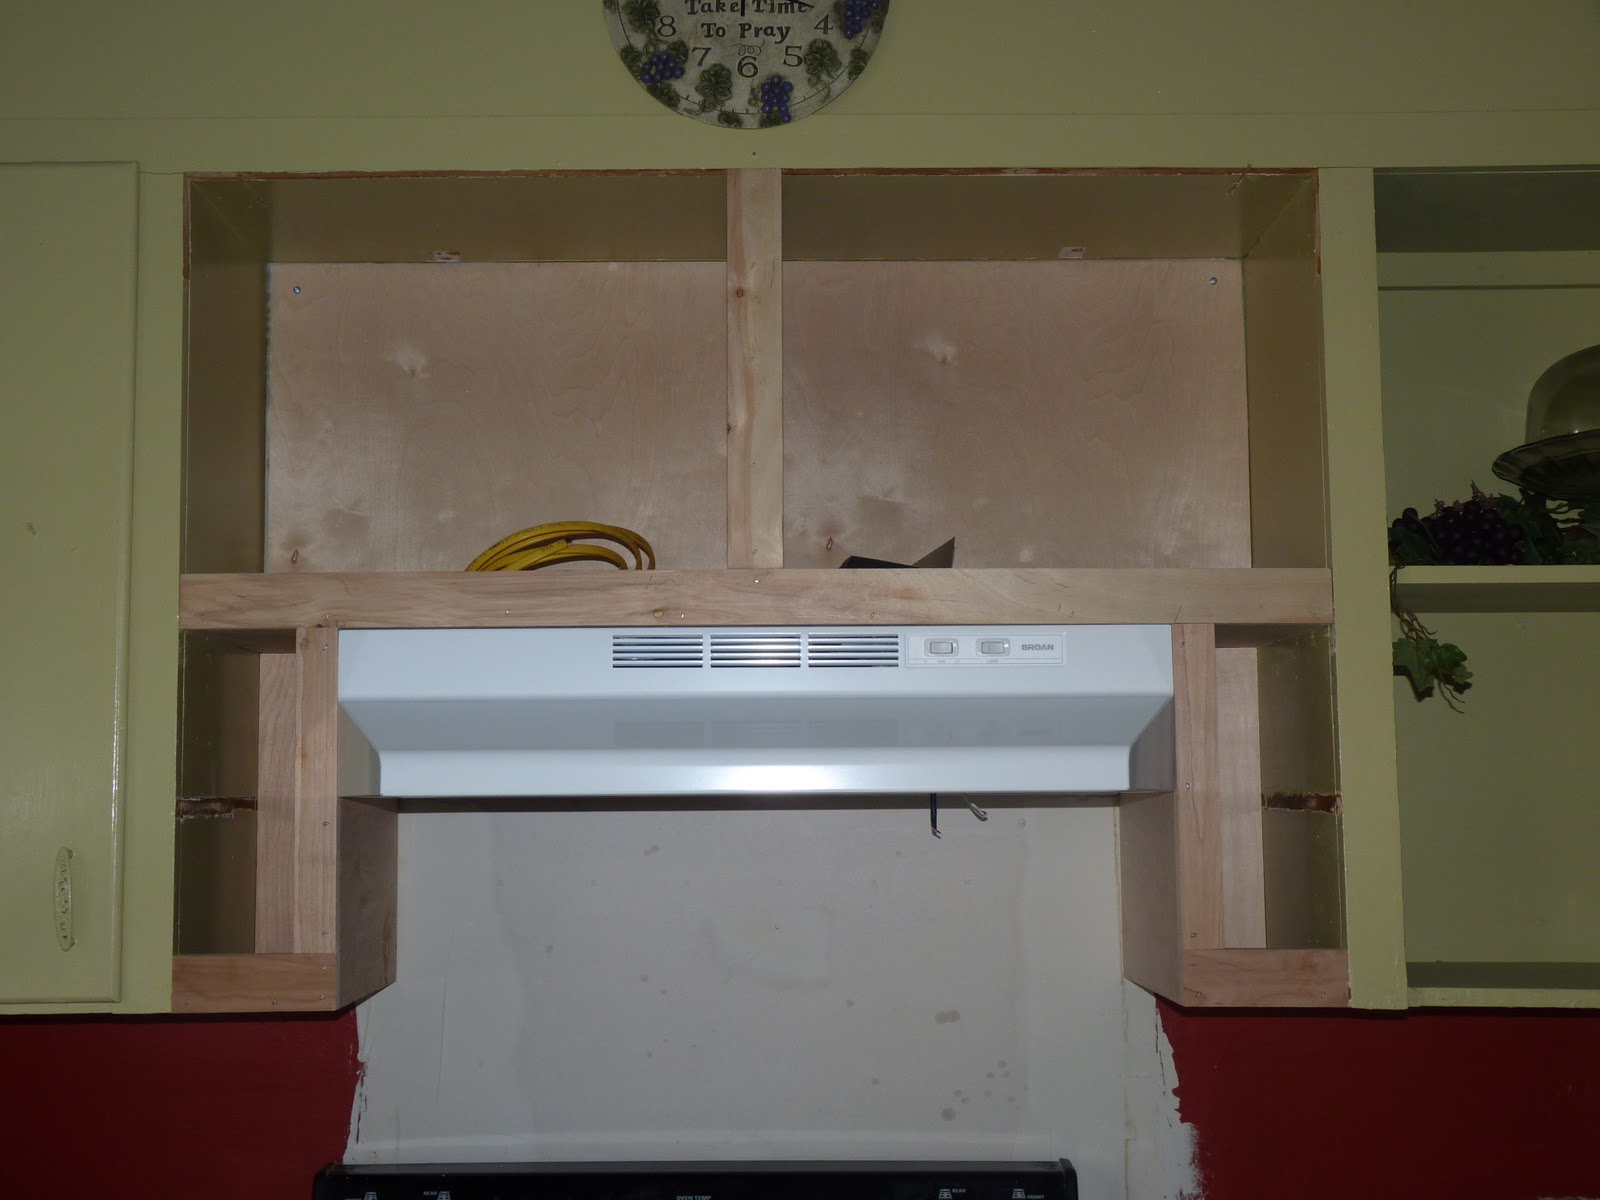 California Building Code Kitchen Range Venting Duct Requirements